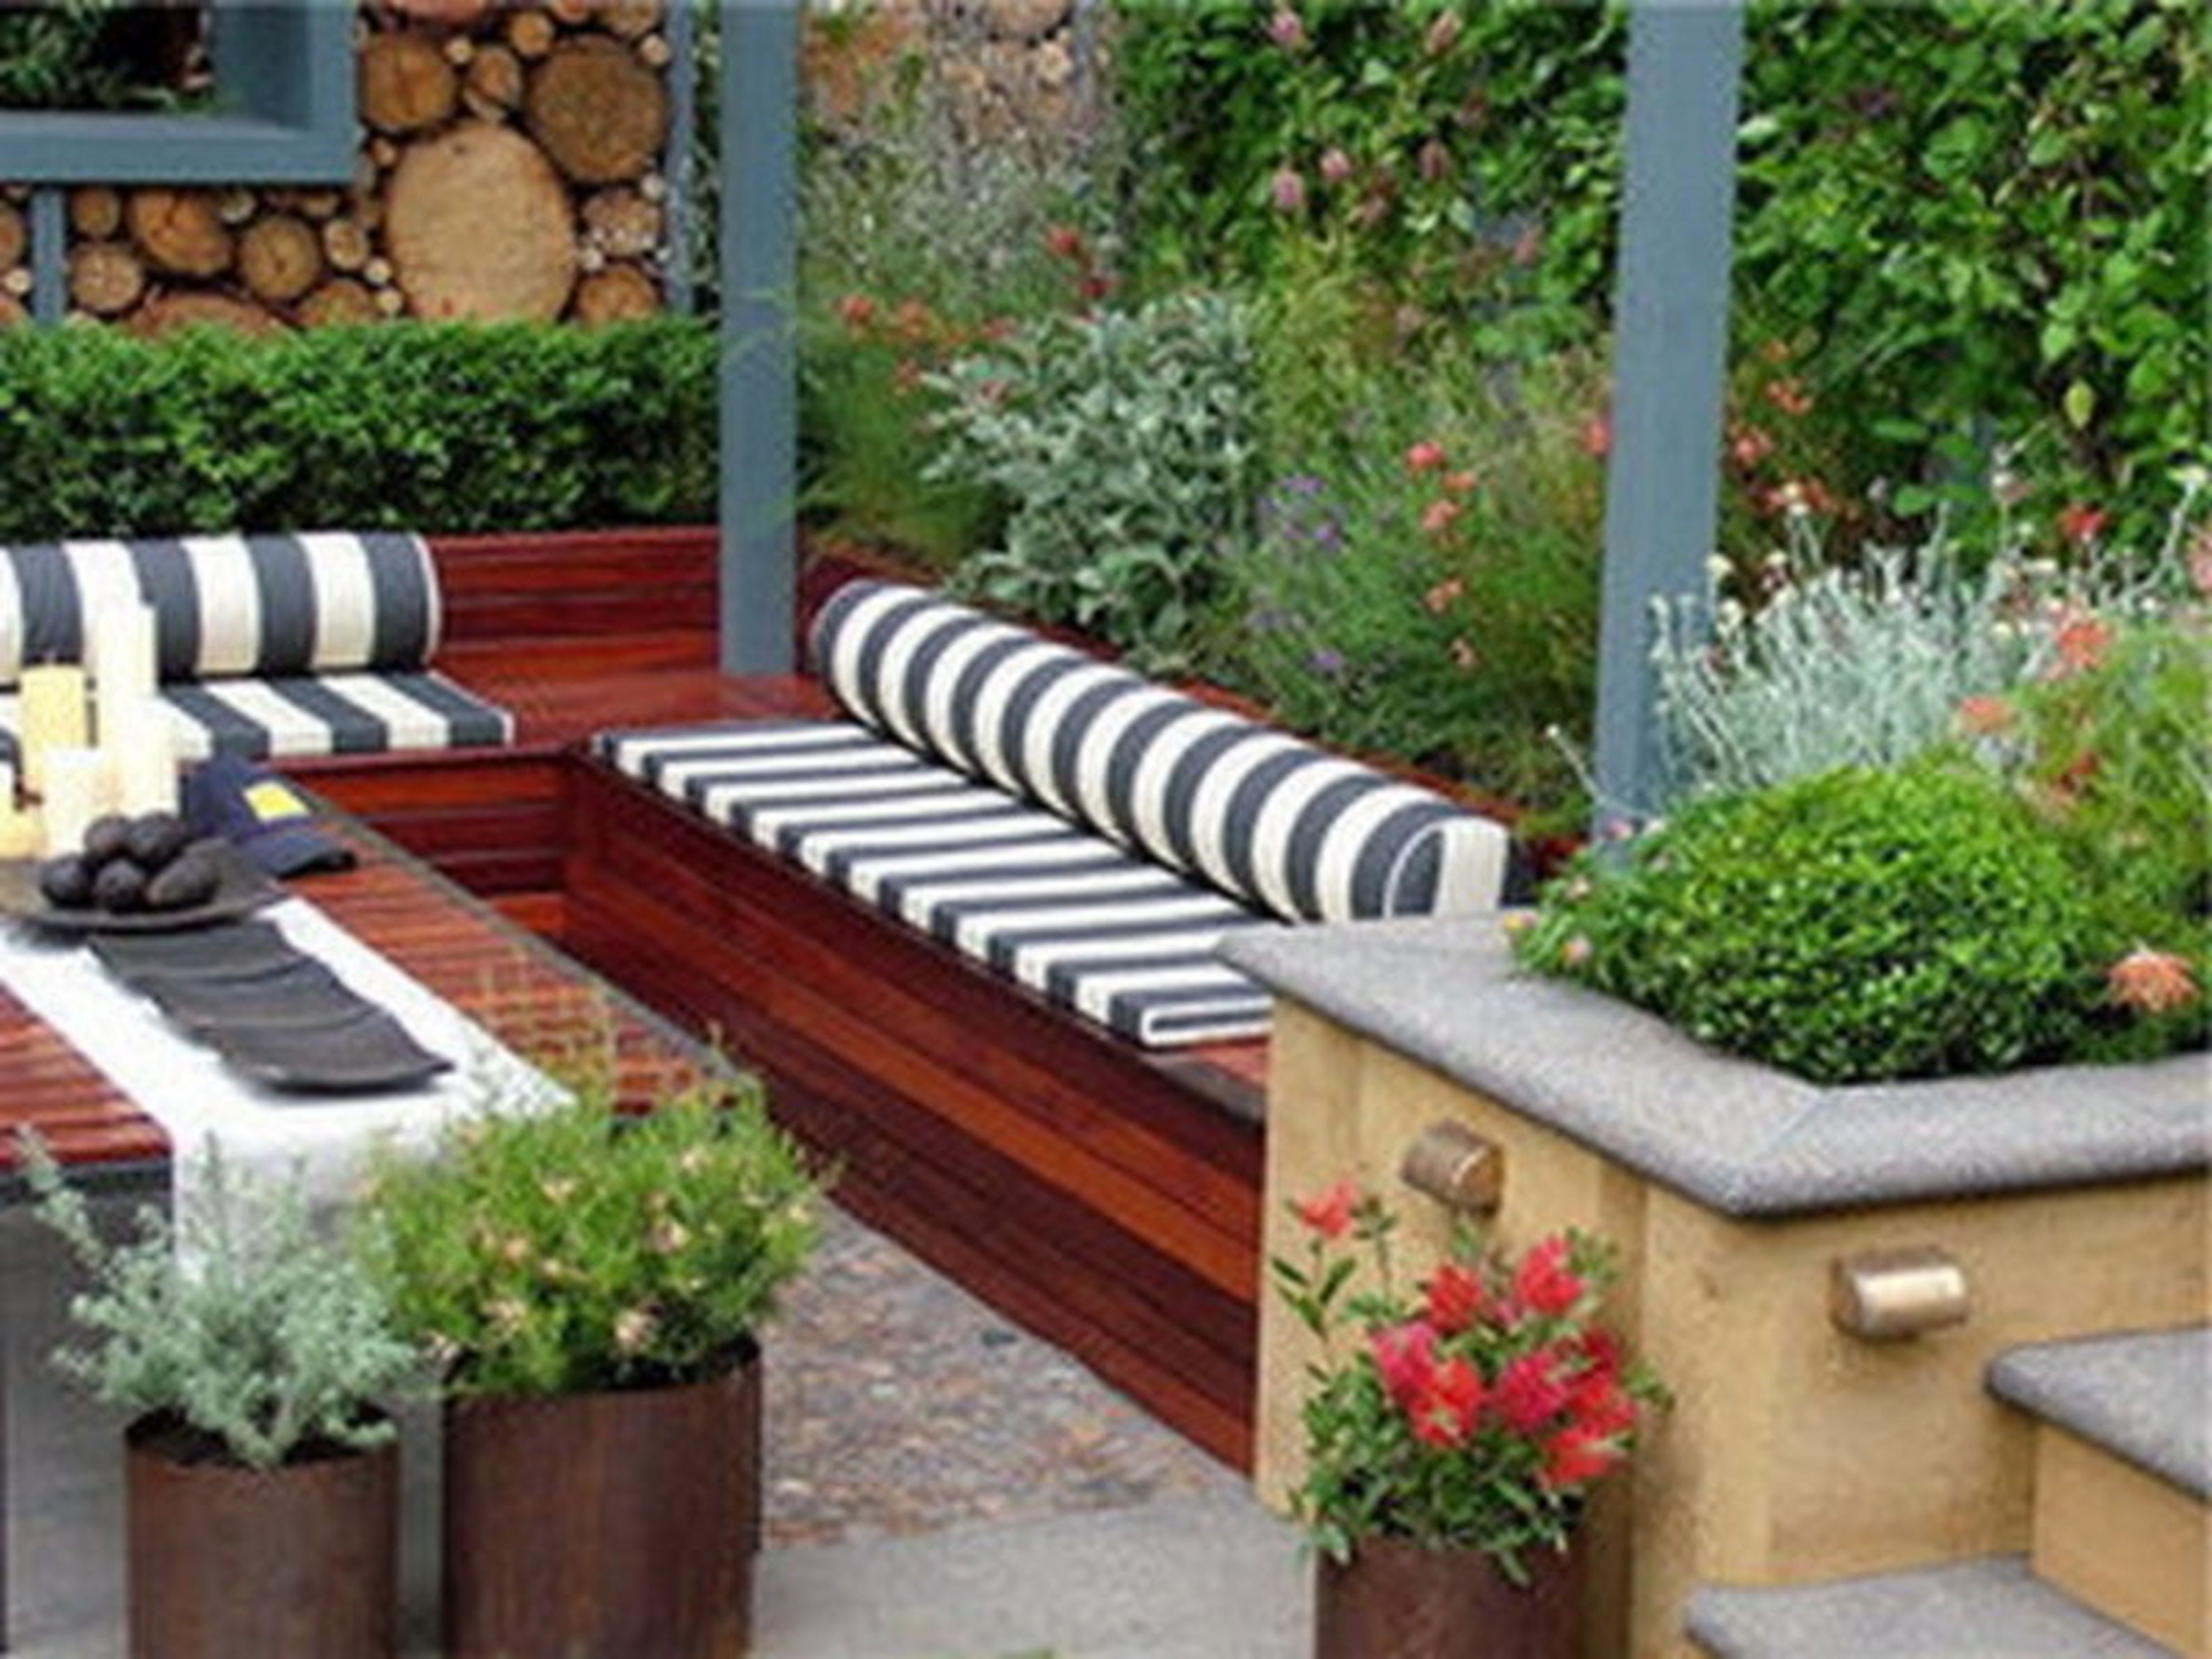 1000+ Images About Small Yards On Pinterest | Gardens, Small Yard